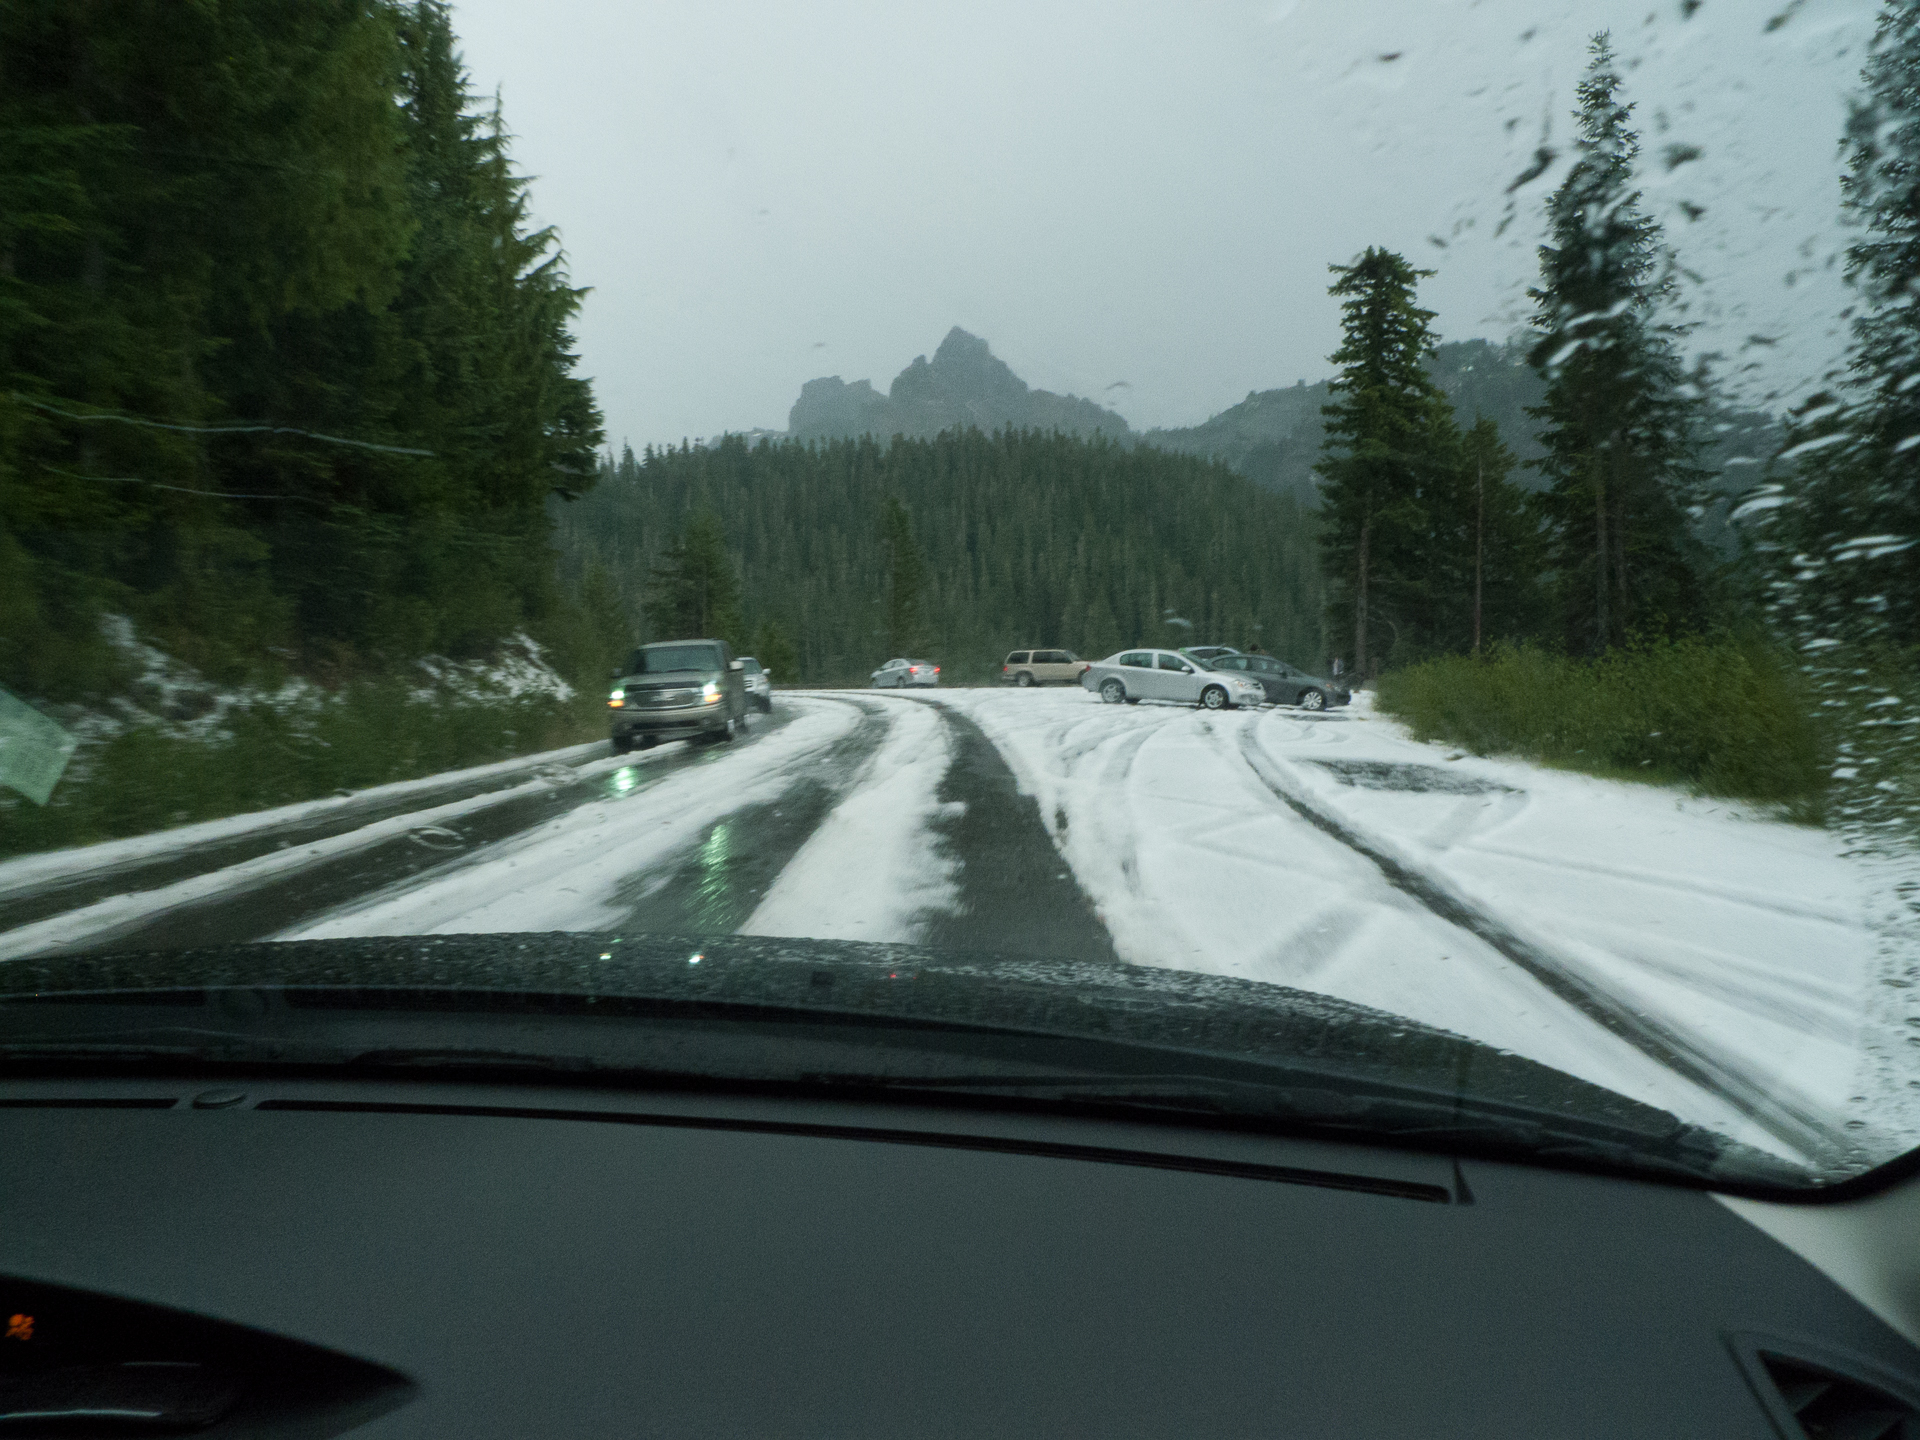 Yes that is snow/hail covering the road in August. You never know what you'll get on the mountain.